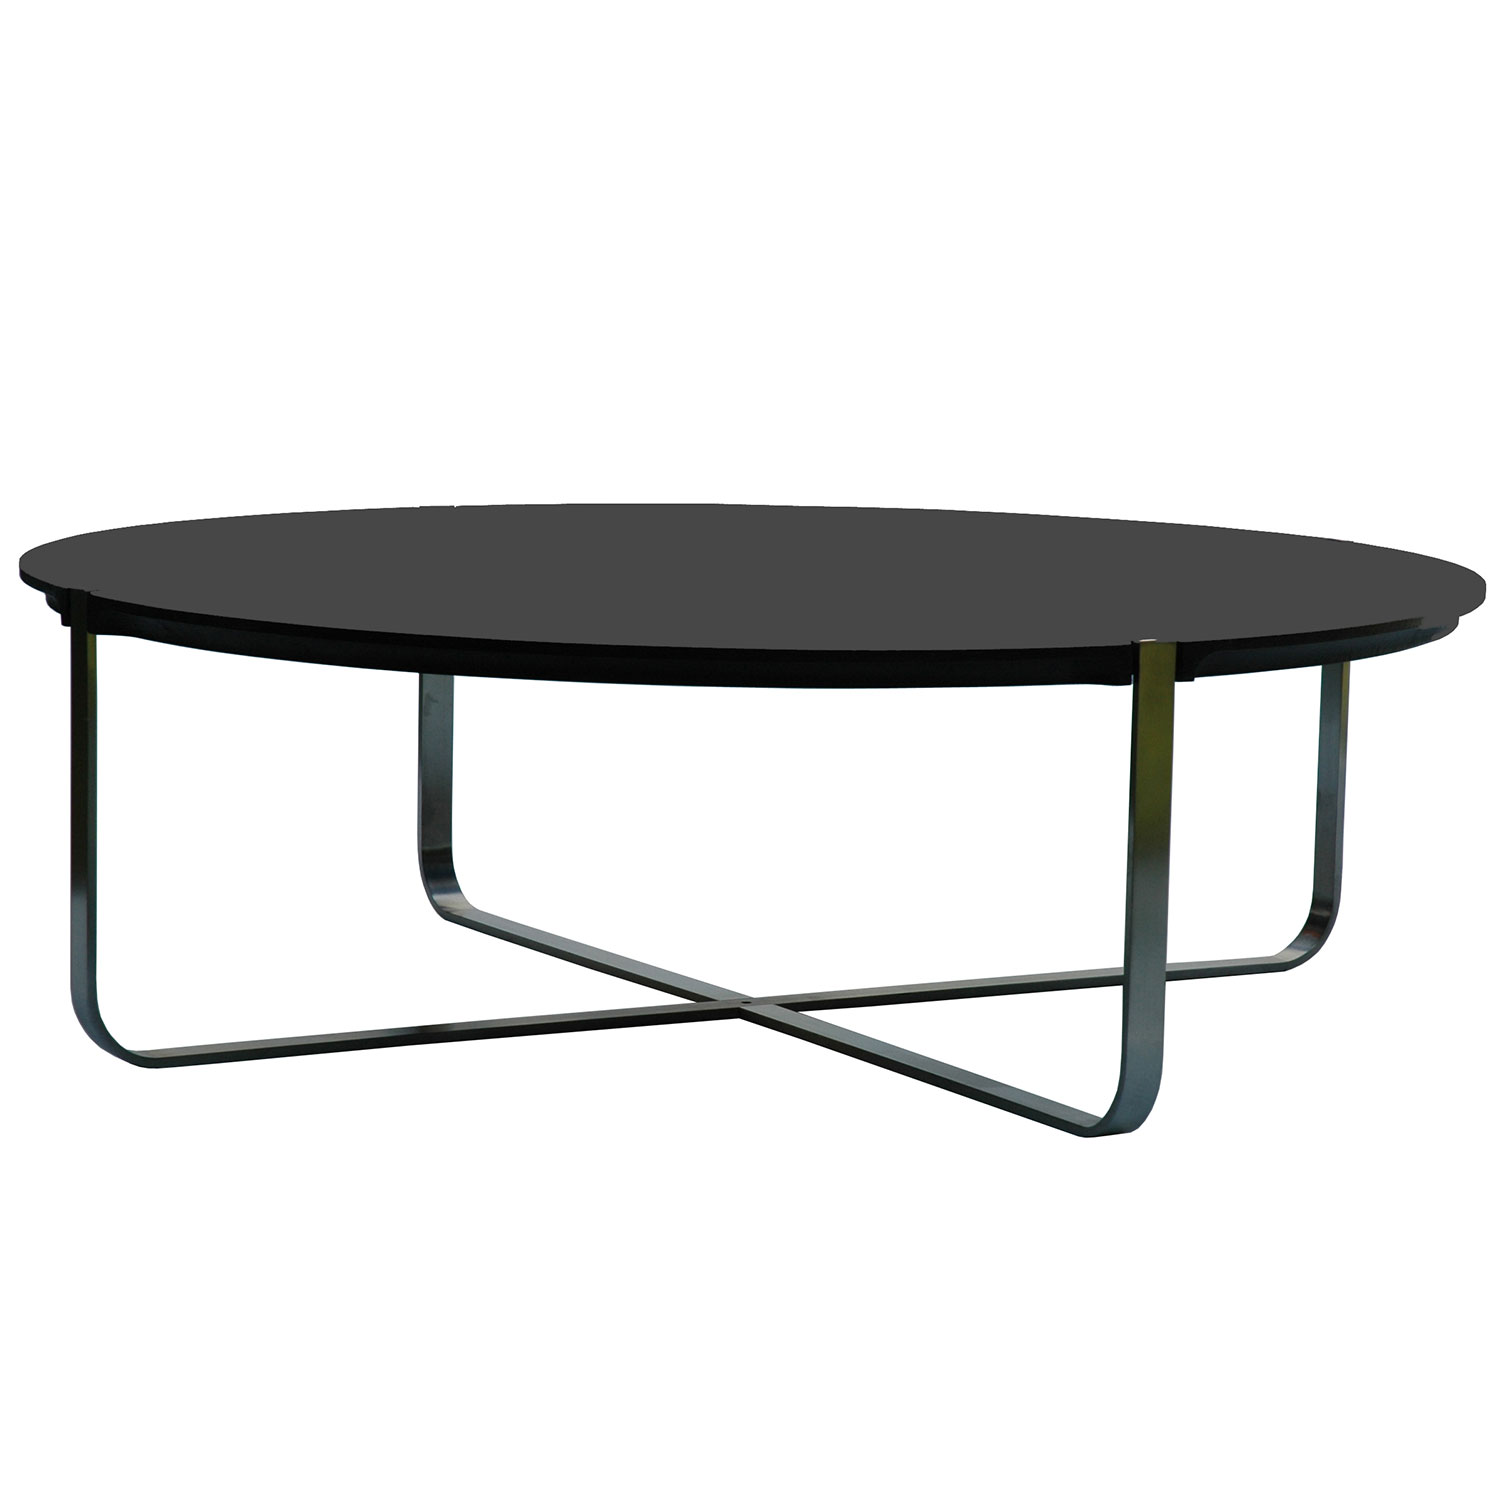 - C1 Black Design Coffee Table In Steel And Wood, On Sale At Pure Deco